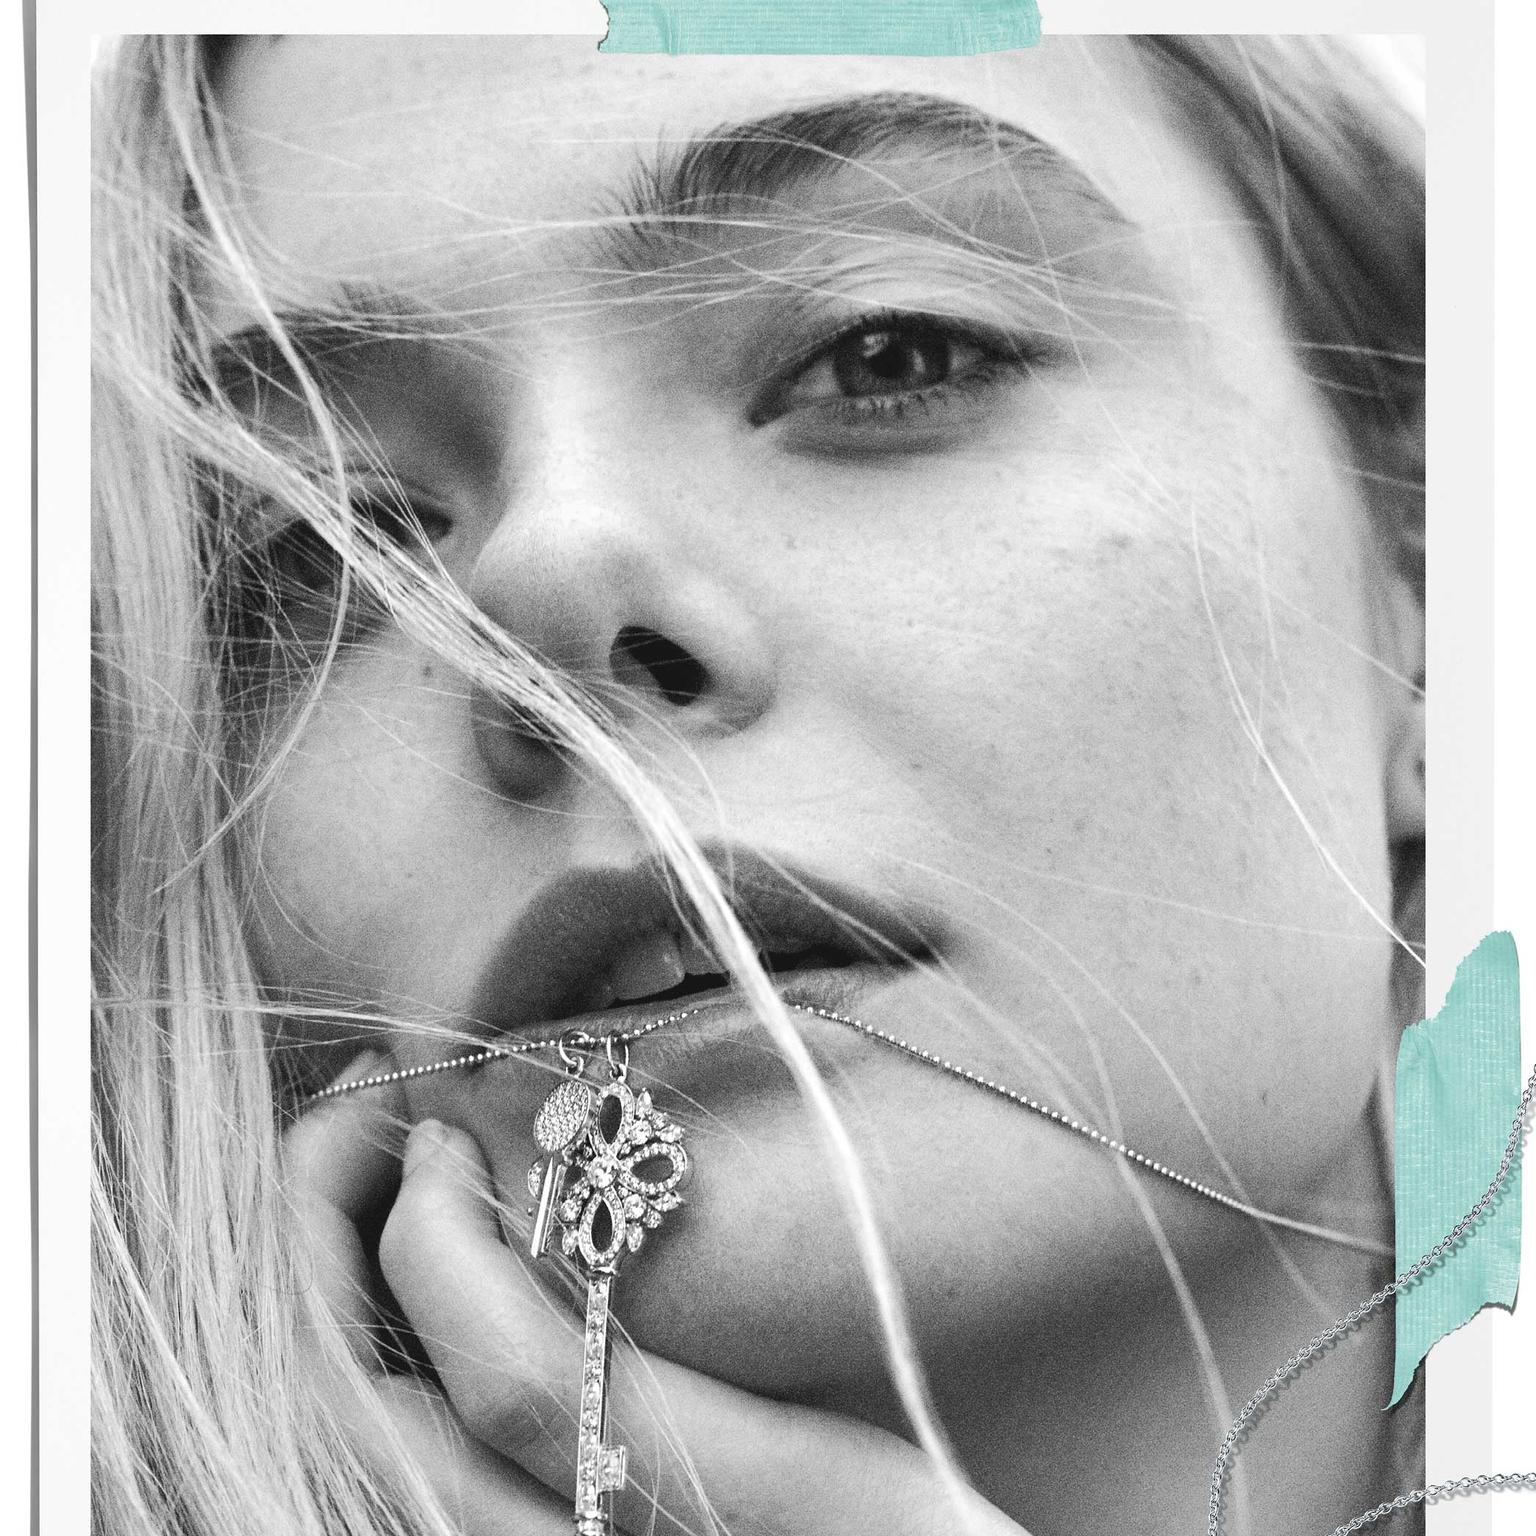 Fresh-faced Elle Fanning promotes even some of the more conservative Tiffany jewels like the Keys collection